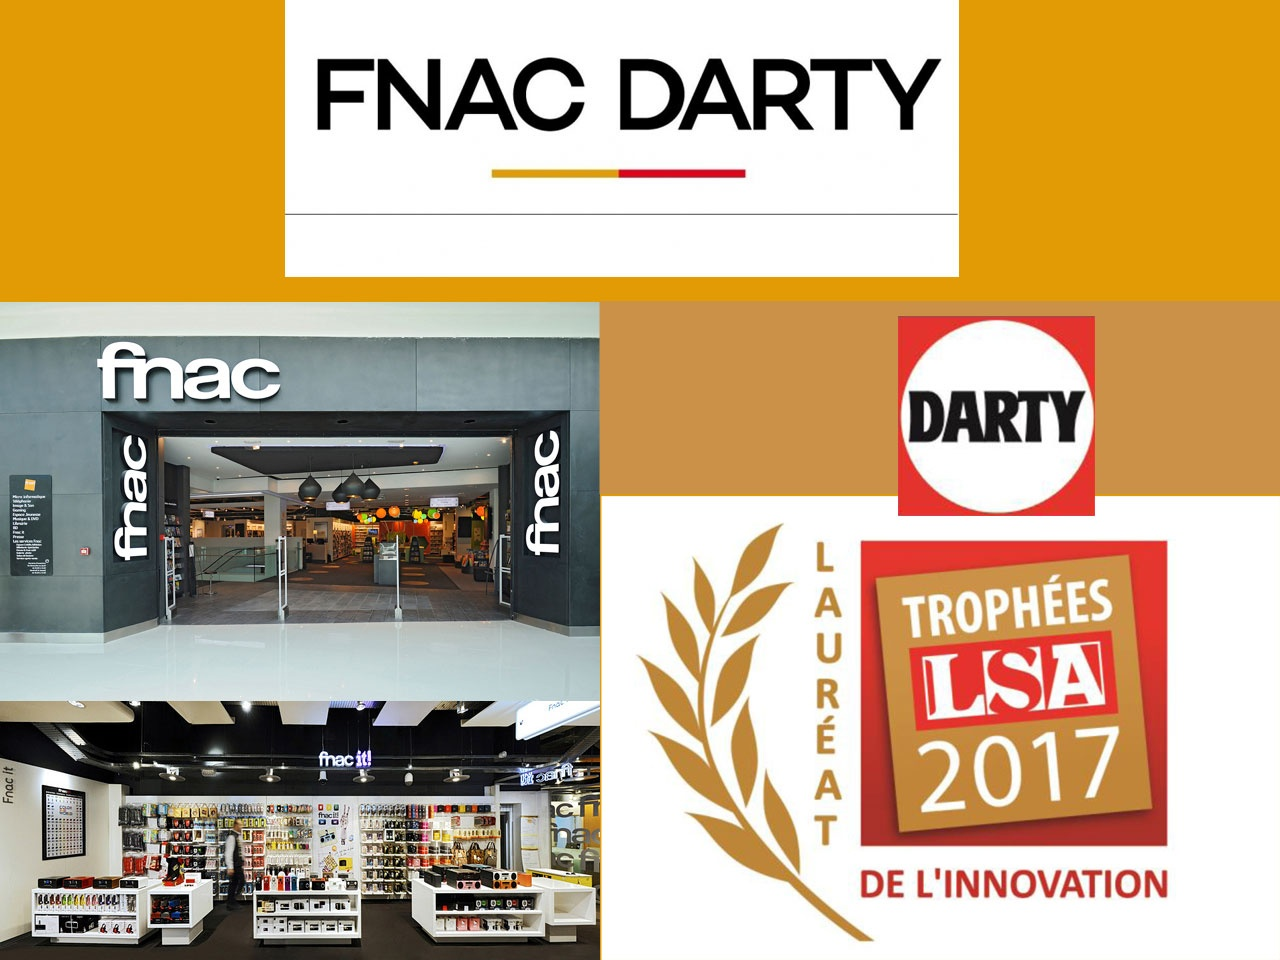 Darty Offre D Emploi Univers Habitat Marché Blanc Brun Fnac Darty Poursuit Son